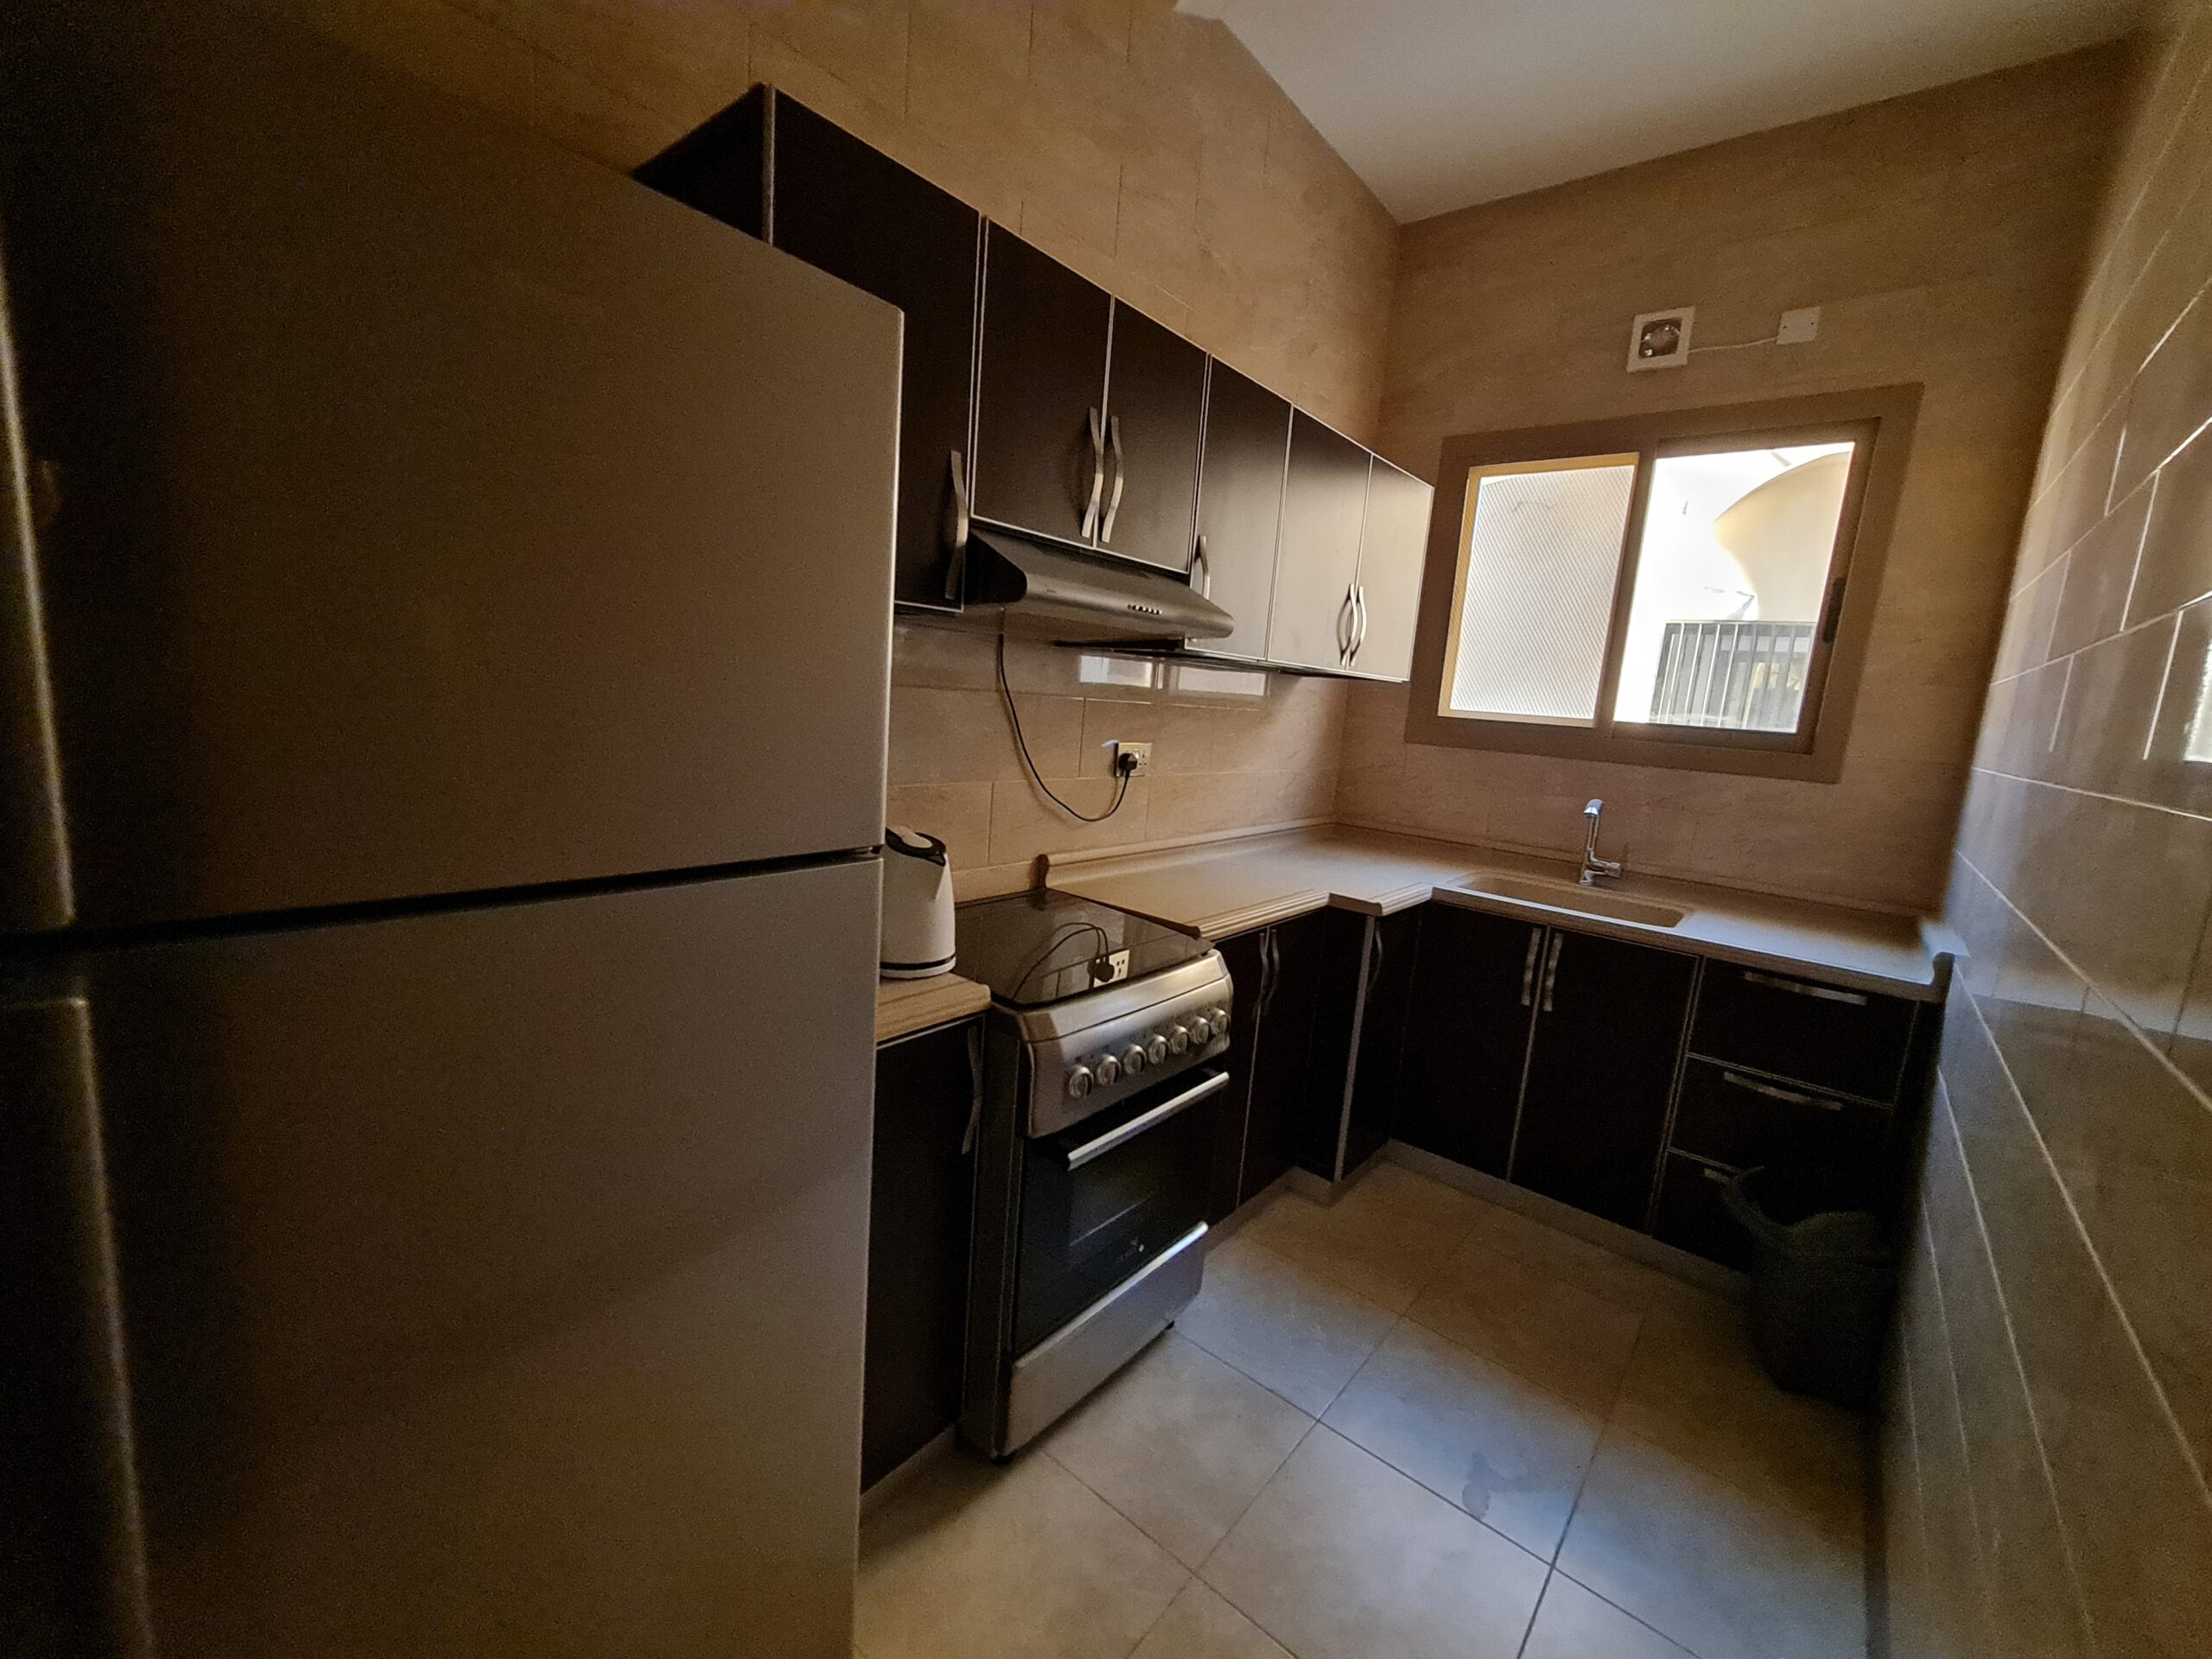 Luxury apartment for rent semi-furnished located in Zinj